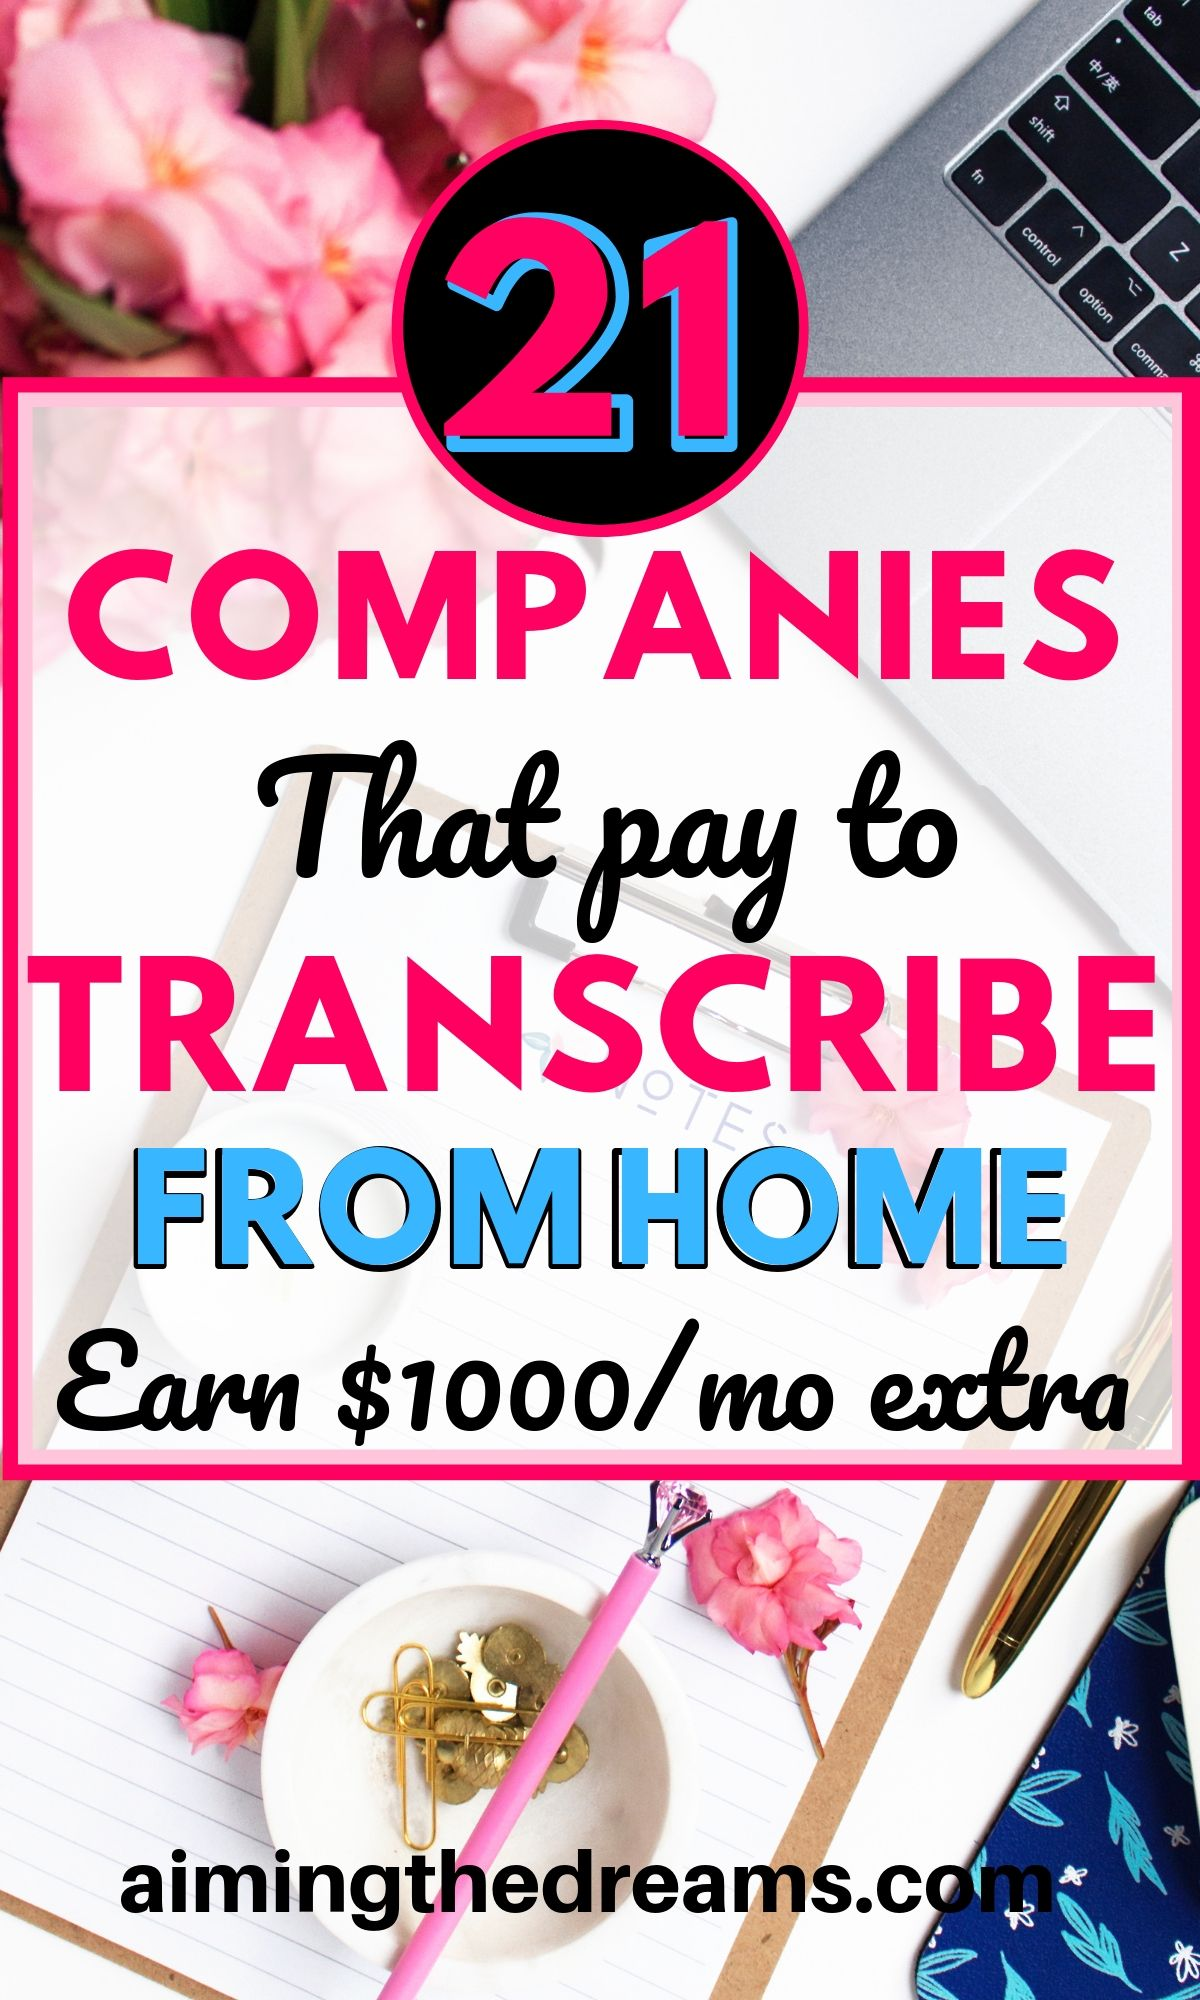 21 companies that pay to transcribe from home